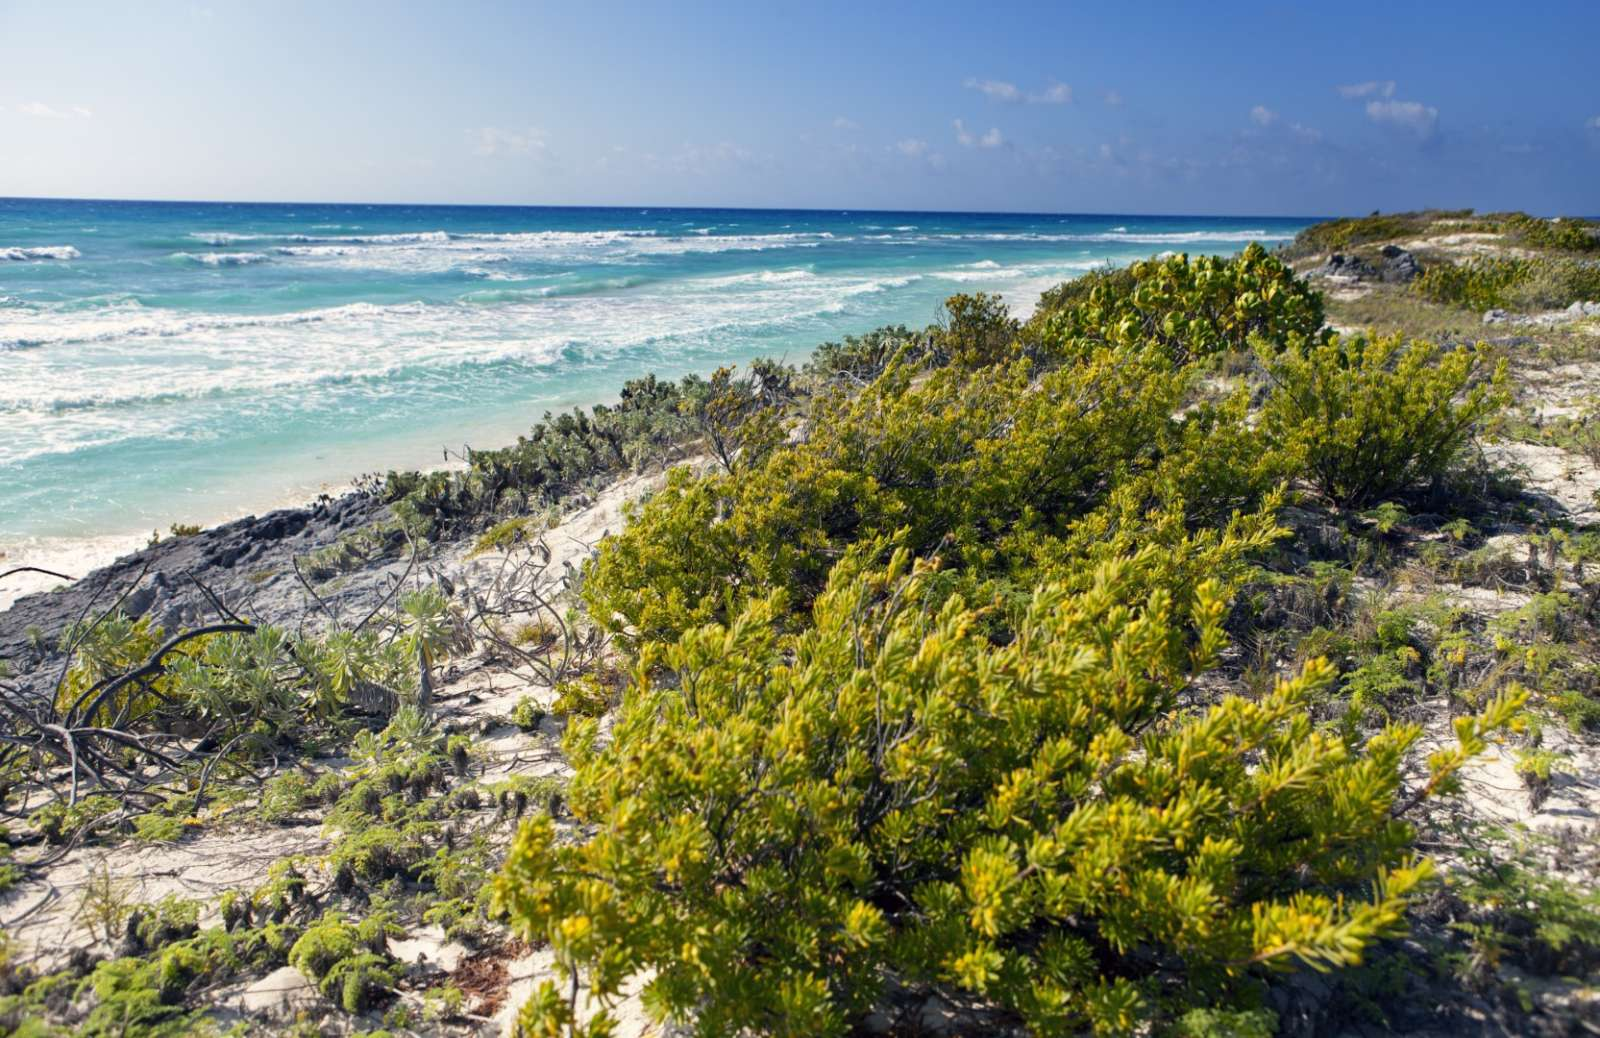 A rocky stretch of beach on Cayo Largo, Cuba